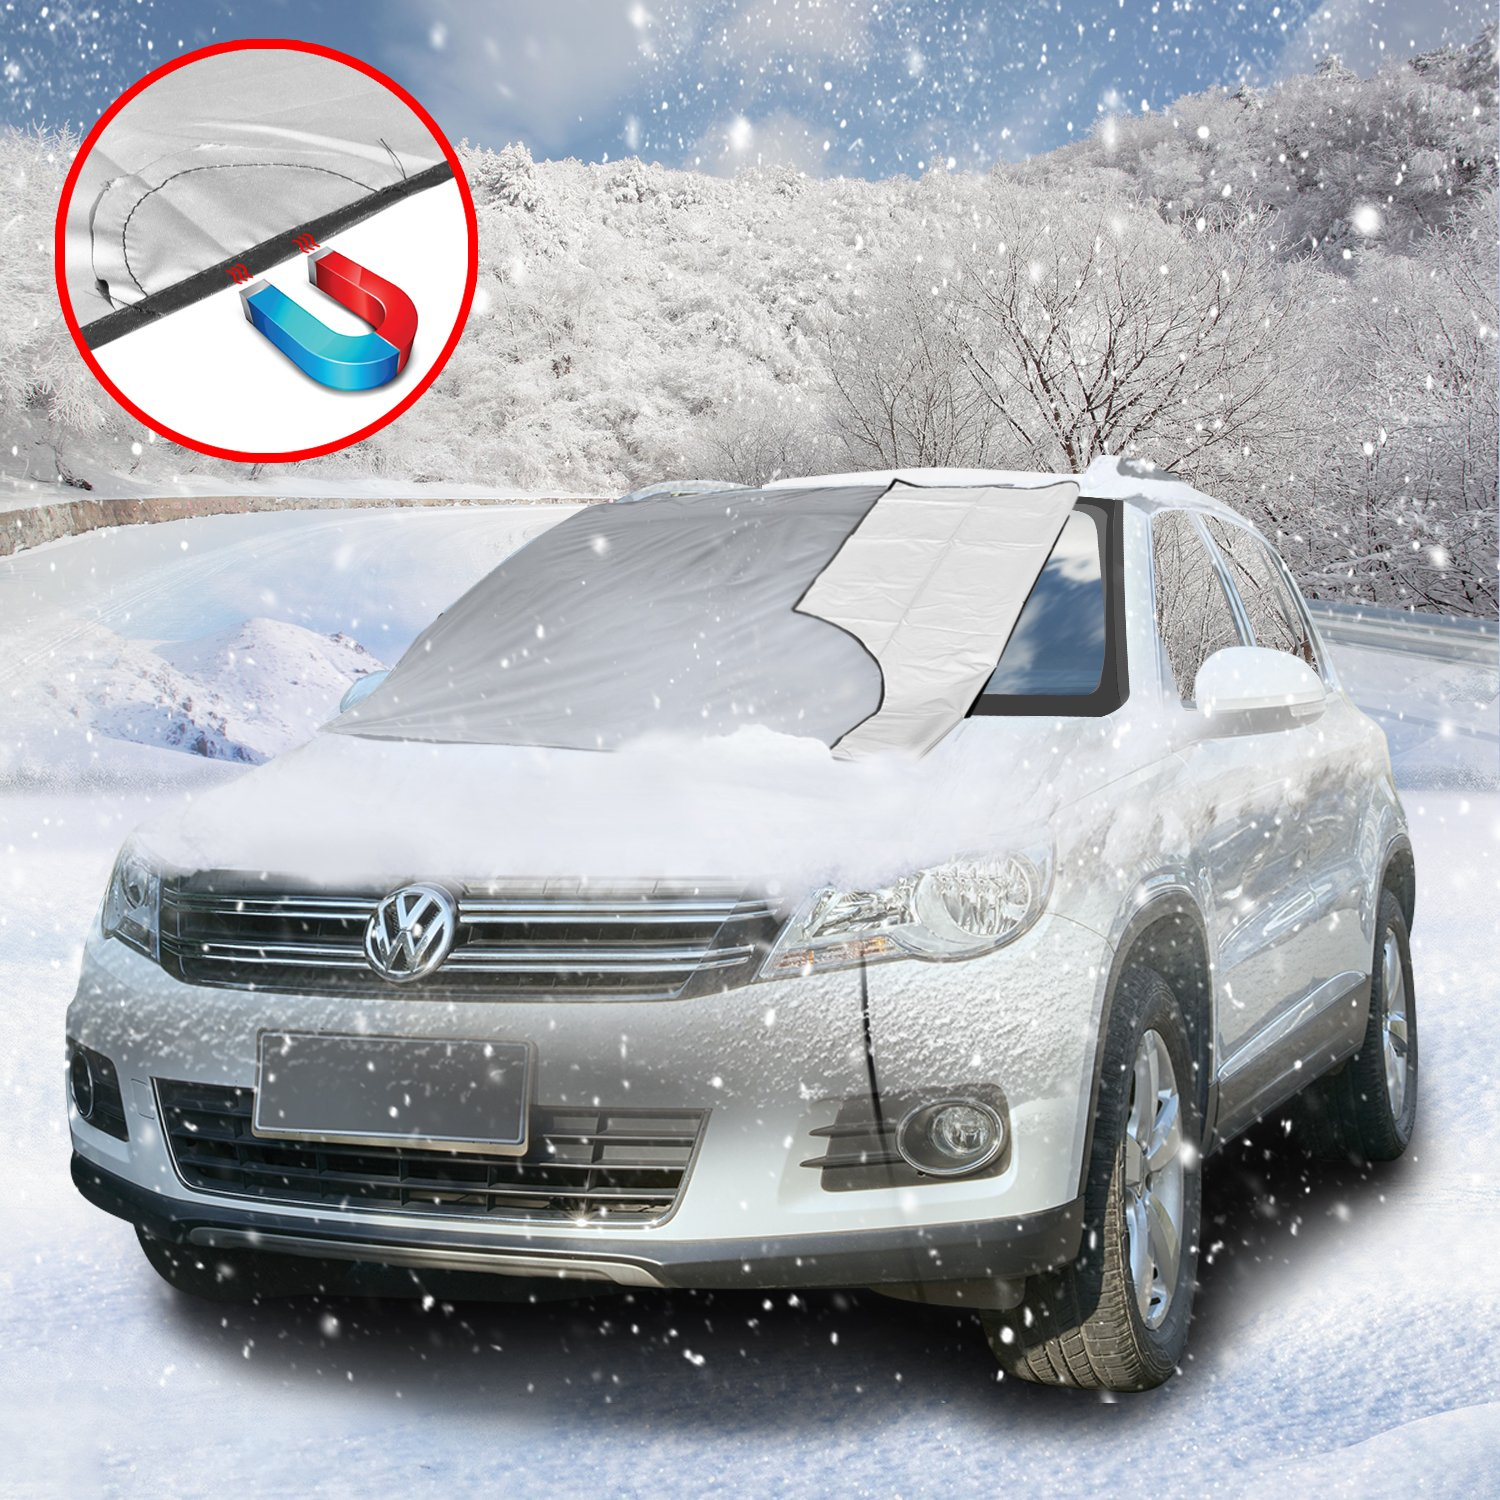 SCM Frost Windshield Cover, Ice and Frost Guard Fits SUV, Truck & Car Windshields, Magnetic Snow Multi-used as Outdoors Picnic Mats (Magnetic; 215 * 125 cm)